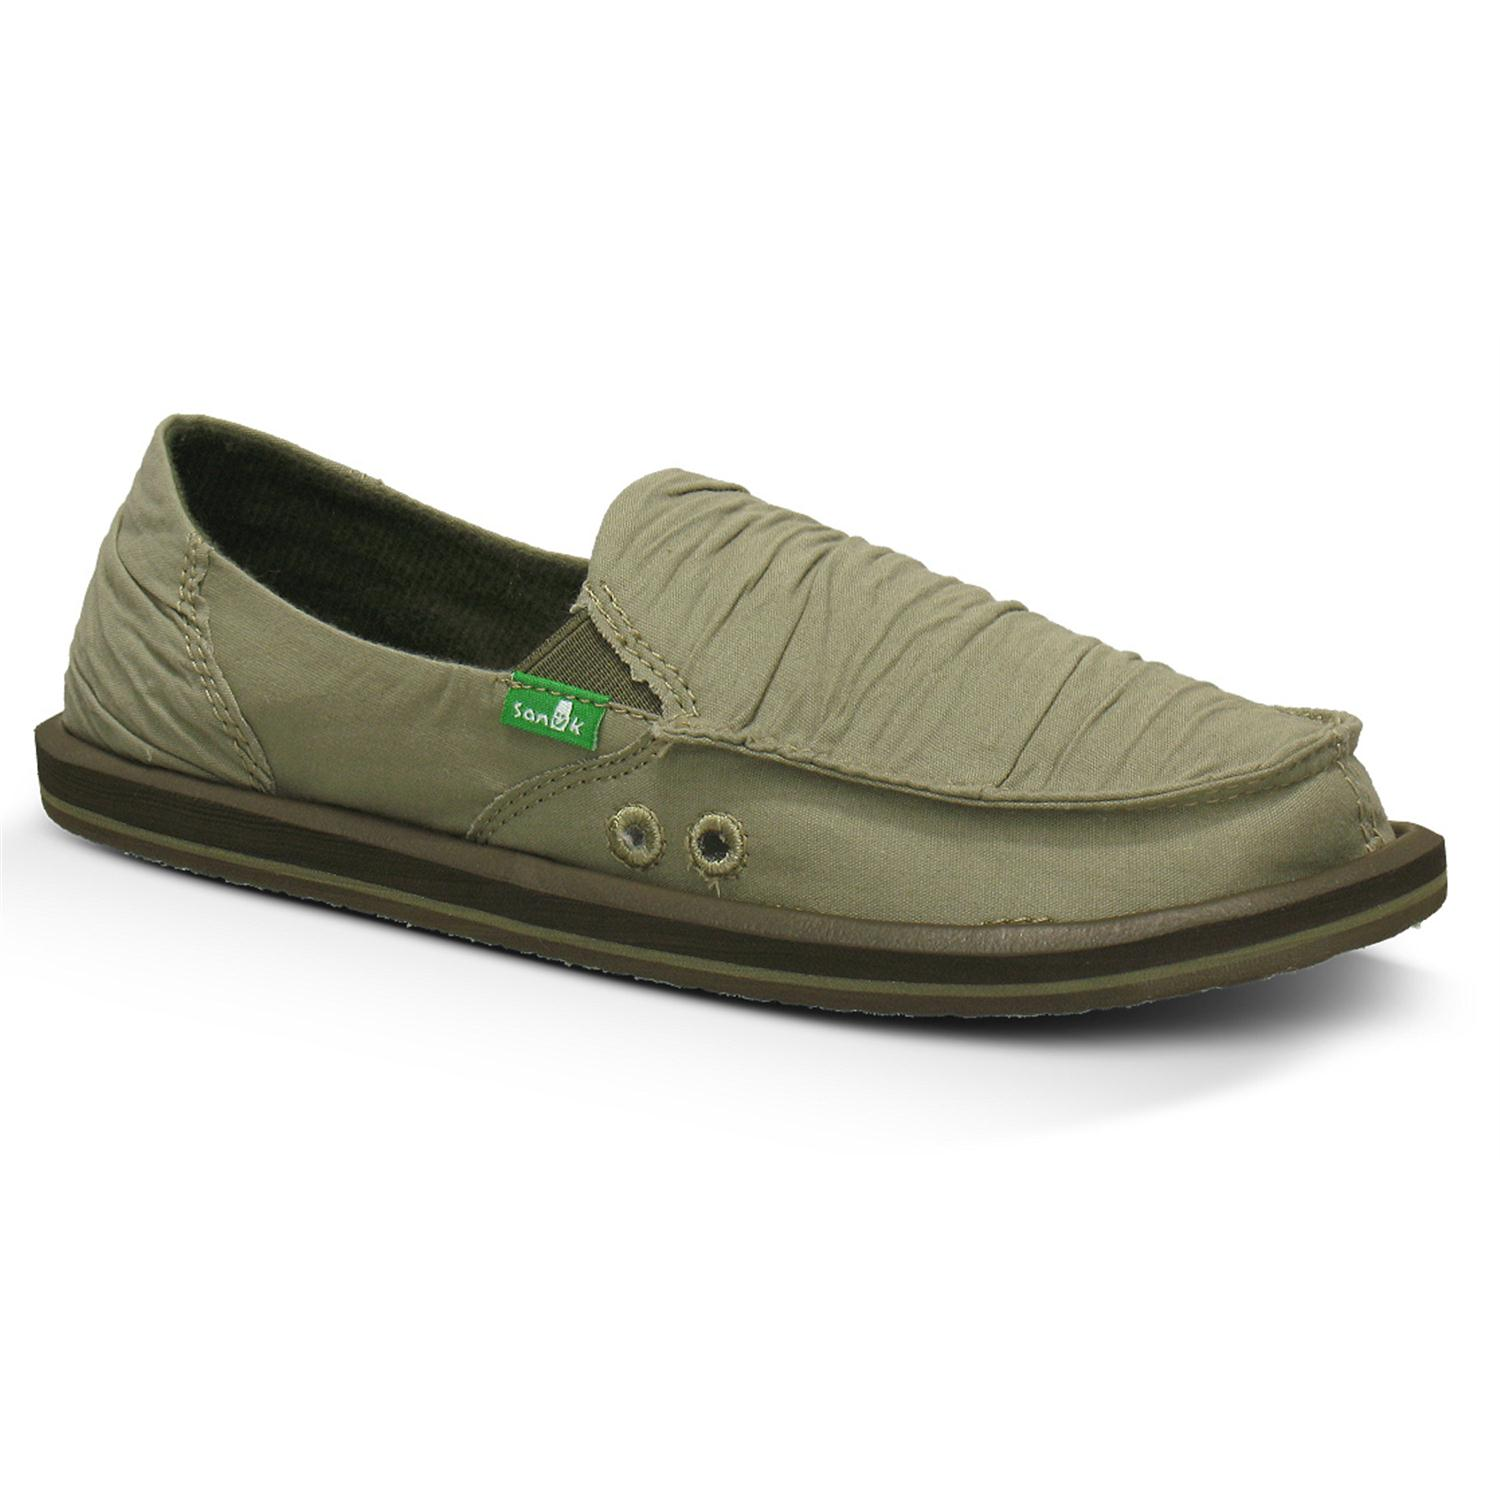 Womens Slip-on Shoes Sale: Save Up to 75% Off! Shop ketauan.ga's huge selection of Slip-on Shoes for Women - Over 1, styles available. FREE Shipping & Exchanges, and a % price guarantee!